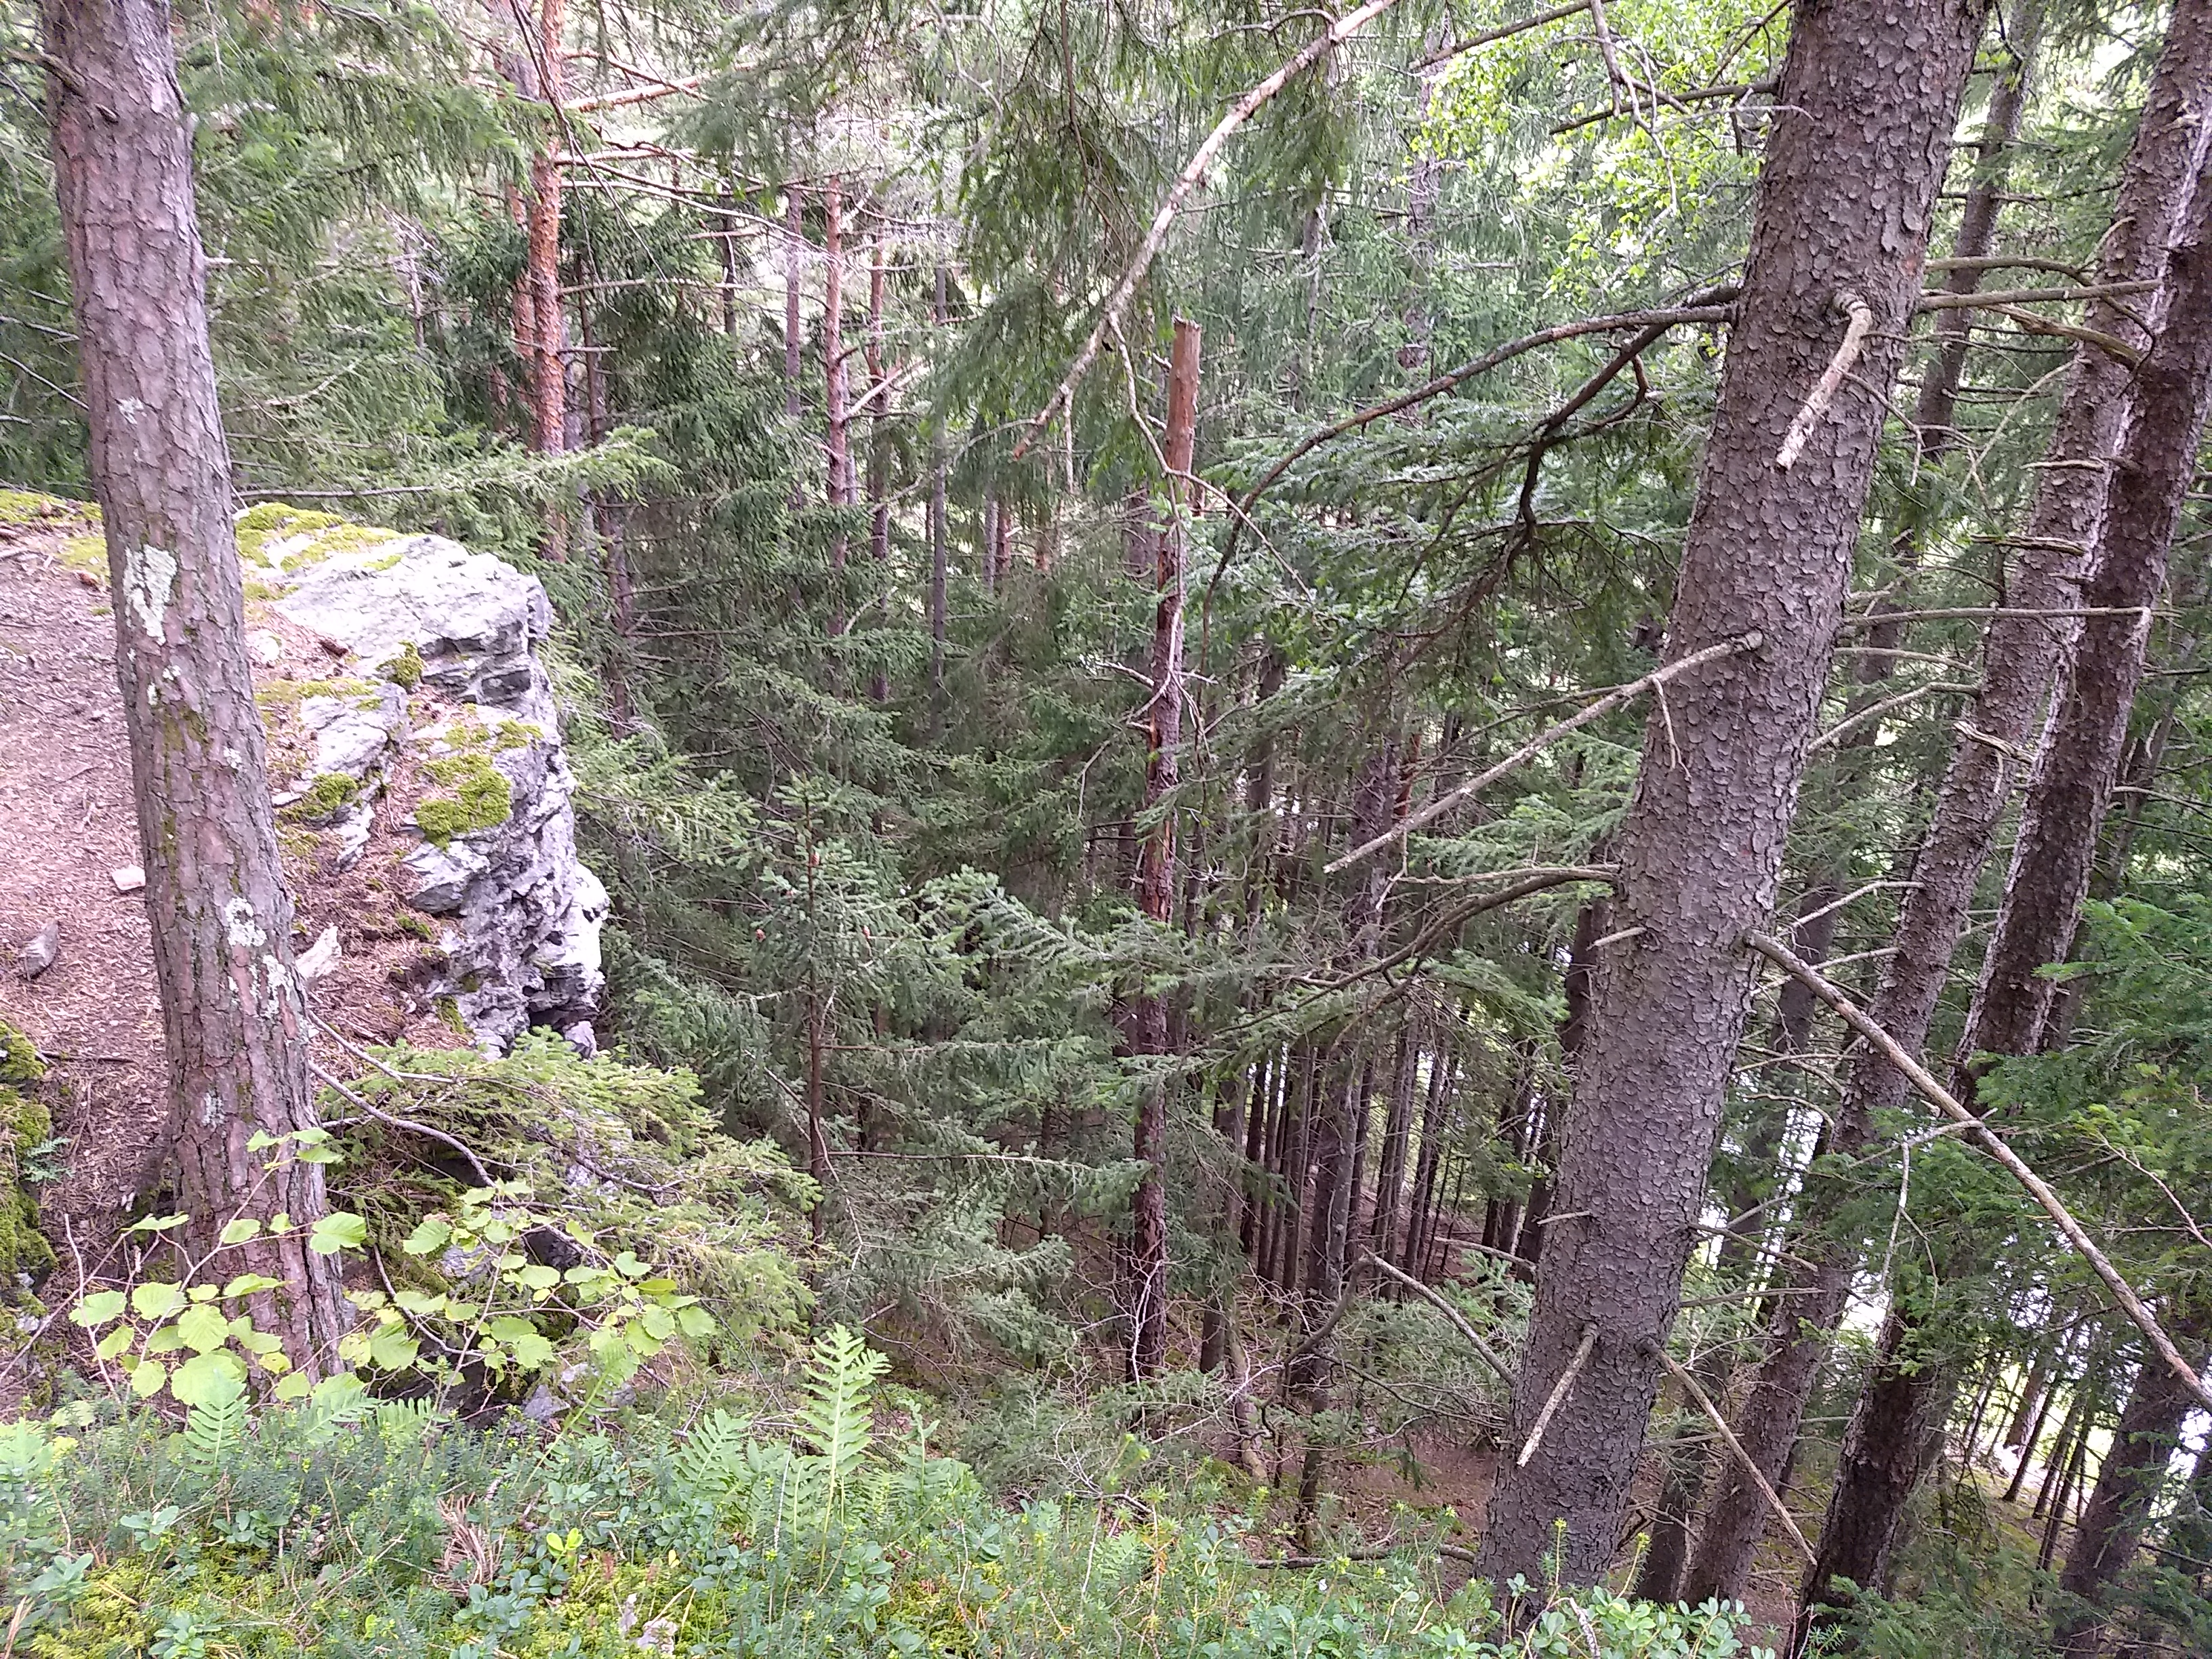 Looking down a steep rocky cliff with young pine and fir trees